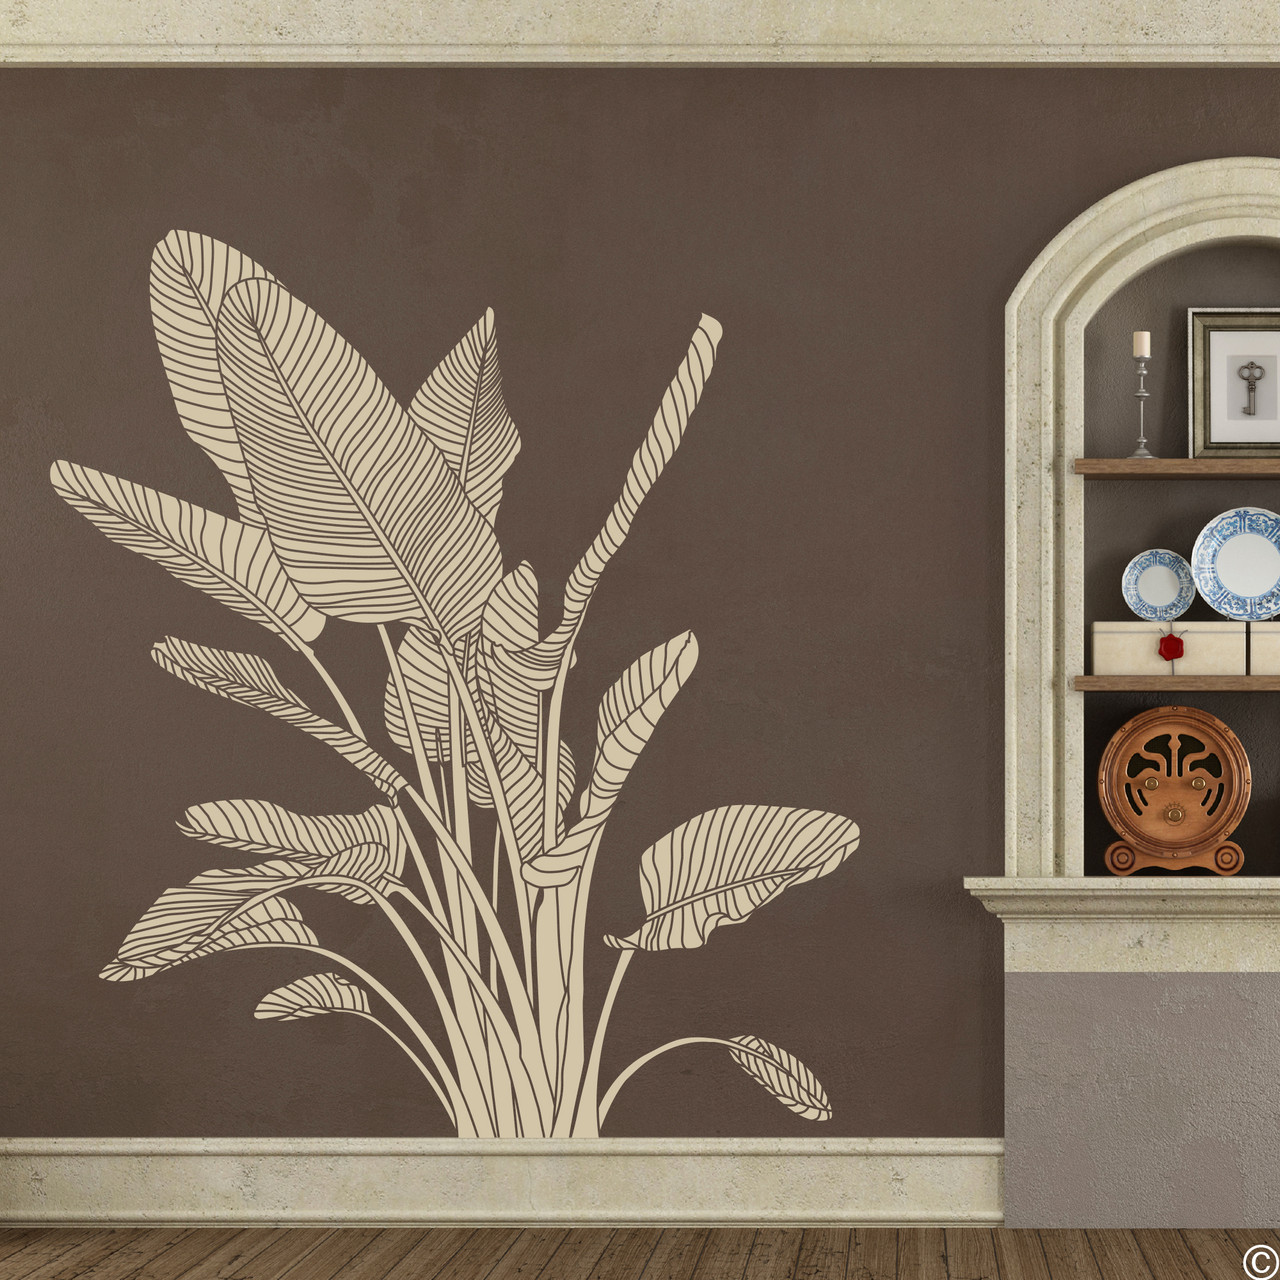 The Bird of Paradise wall decal art shown here in beige vinyl color.